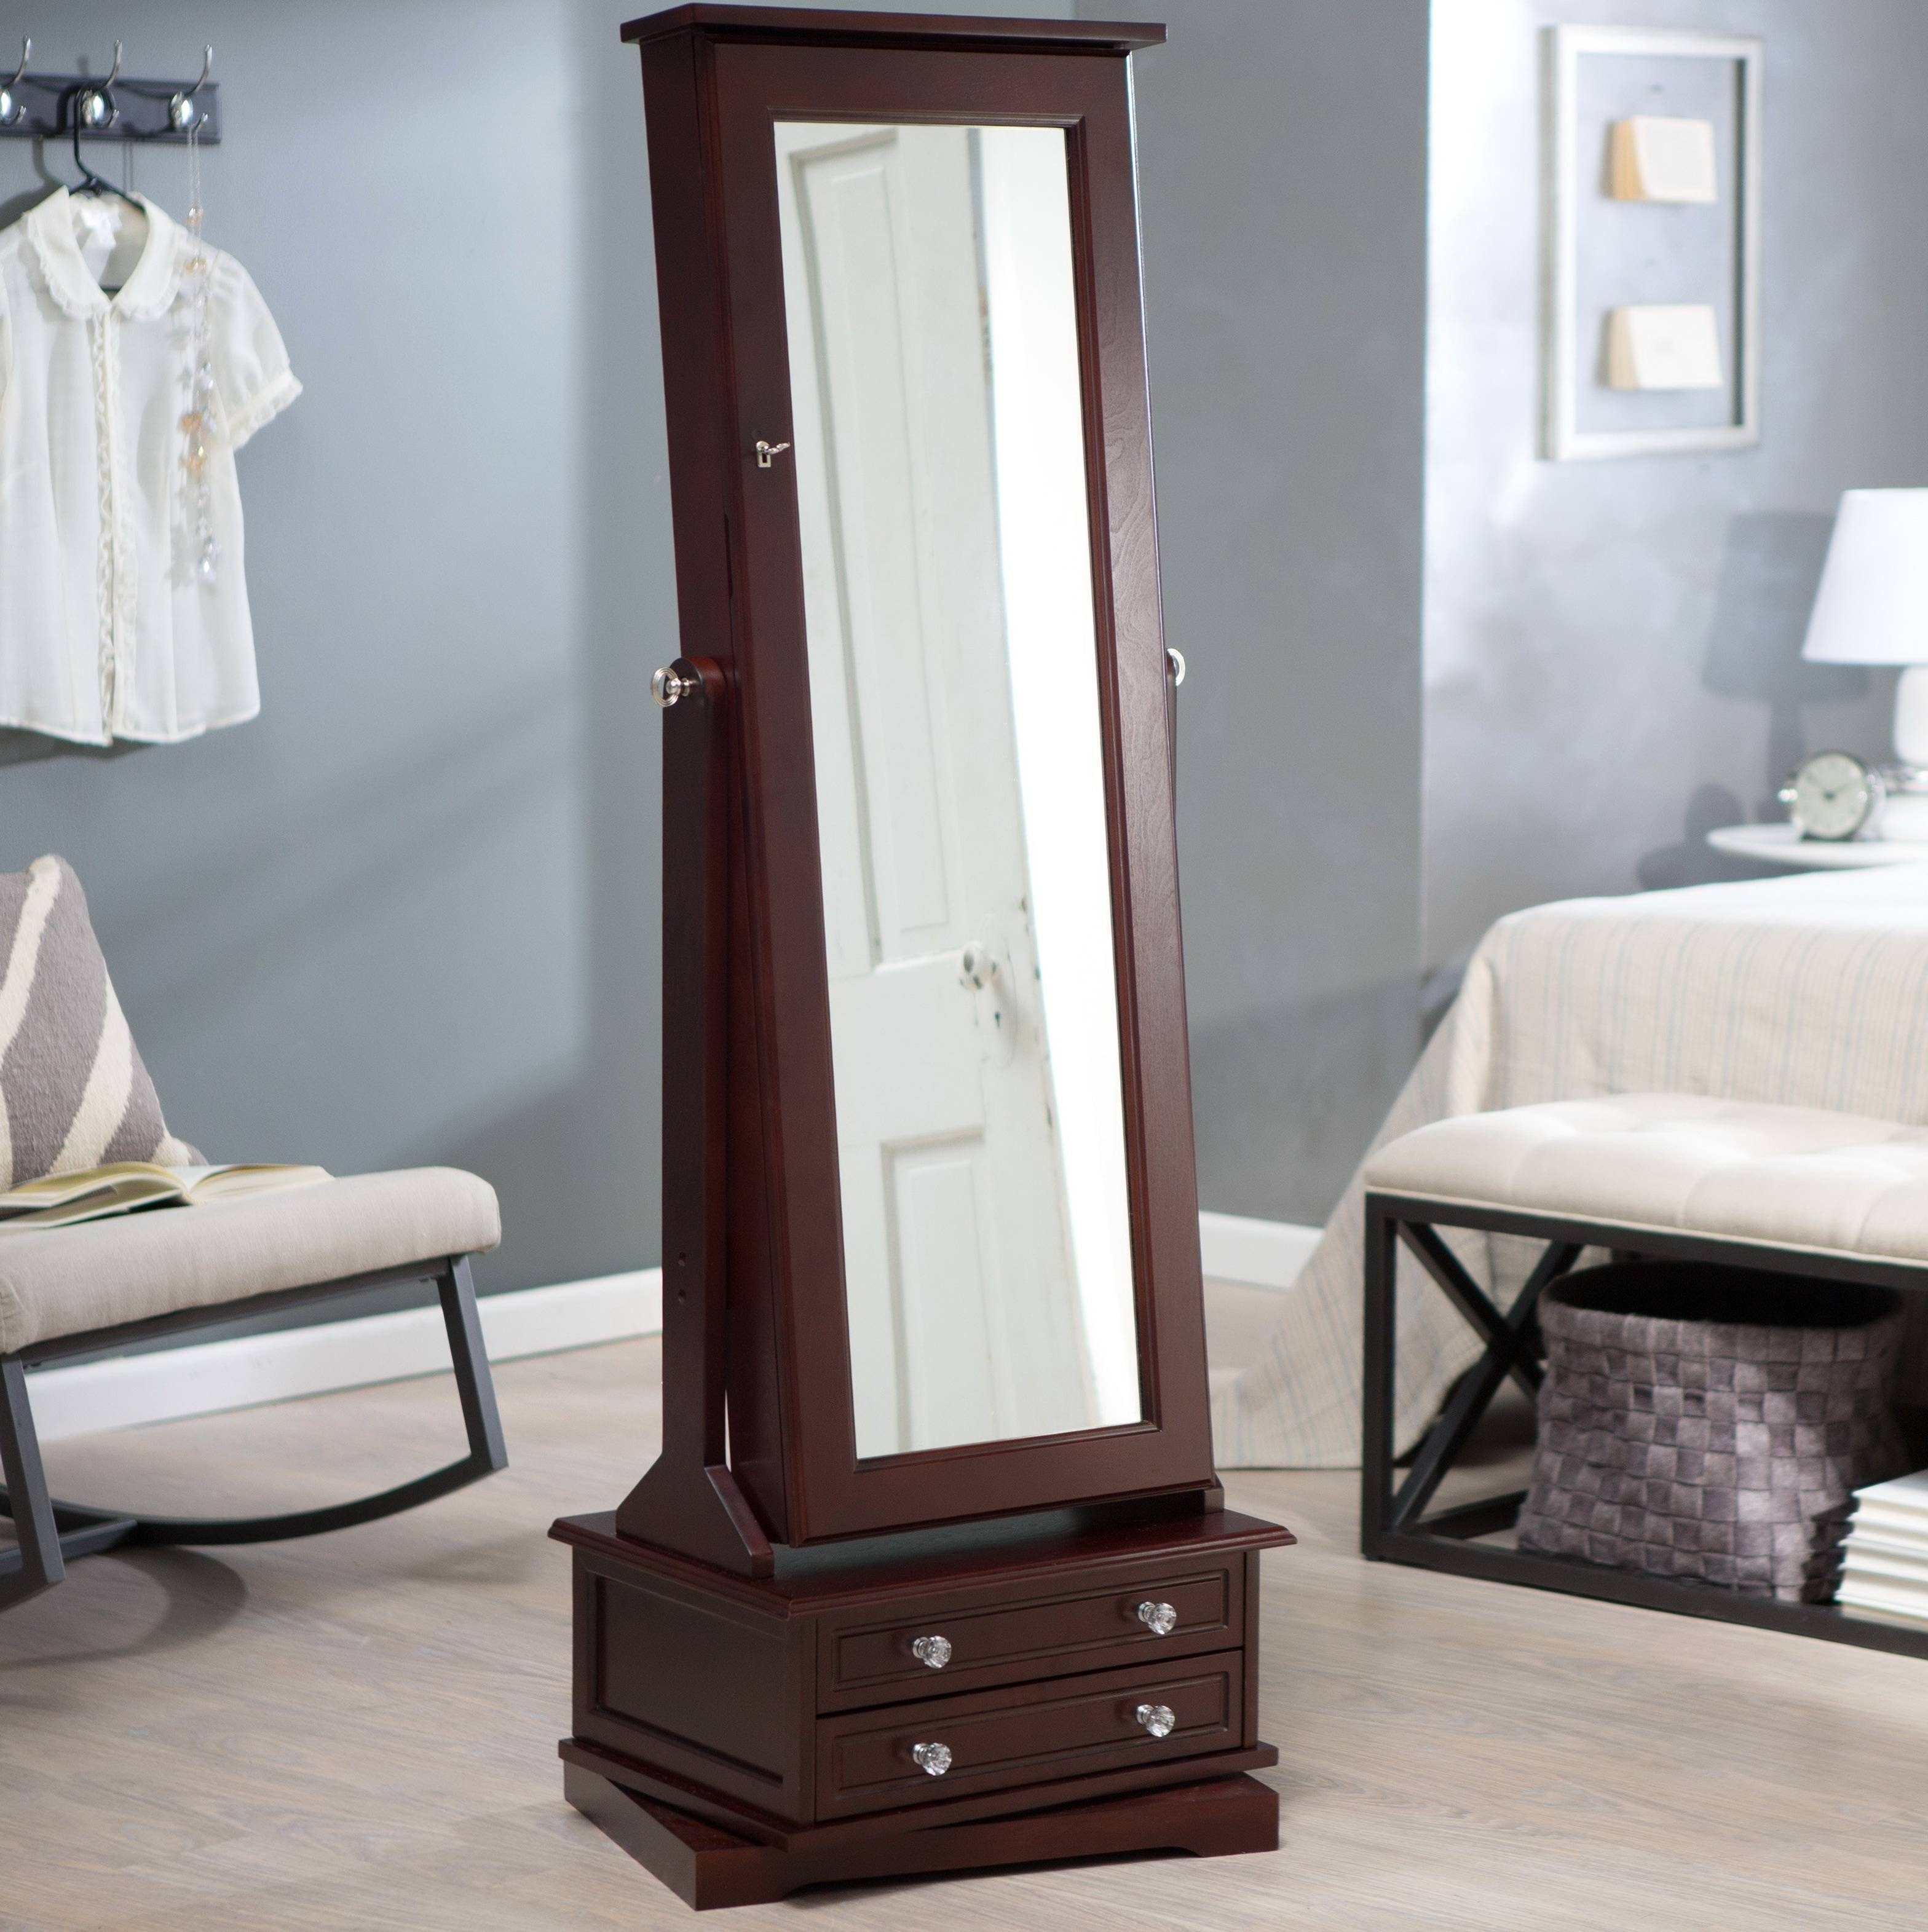 Bedroom Furniture Sets : Victorian Mirror Mirror Tiles Black throughout Victorian Full Length Mirrors (Image 8 of 25)